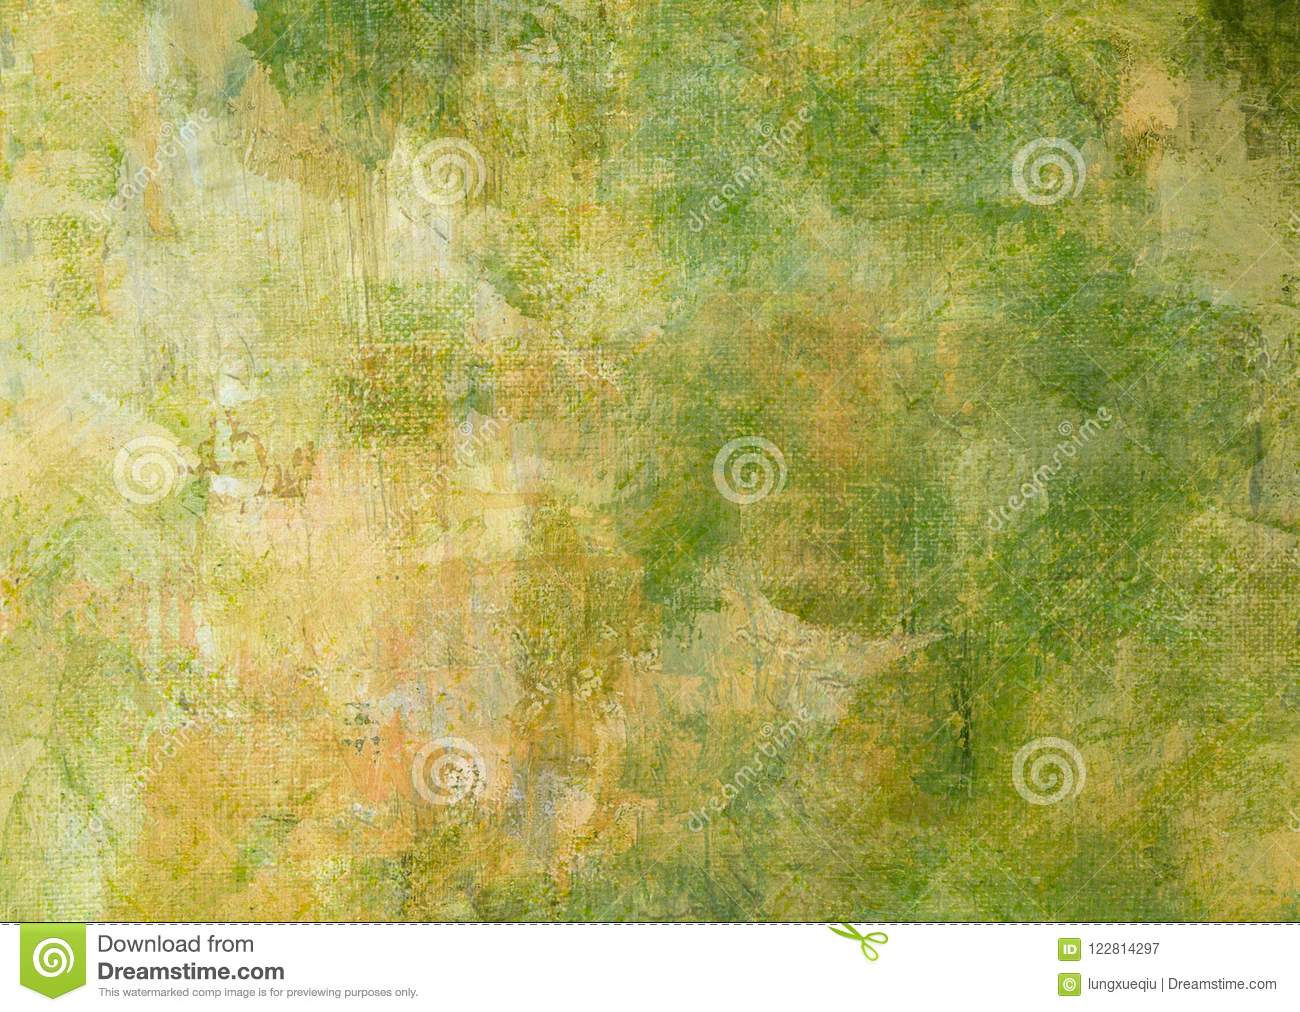 Yellow Green Brown Dark Canvas Abstract Painting Grunge Dark Rusty Distorted Decay Old Texture for Autumn Background Wallpaper